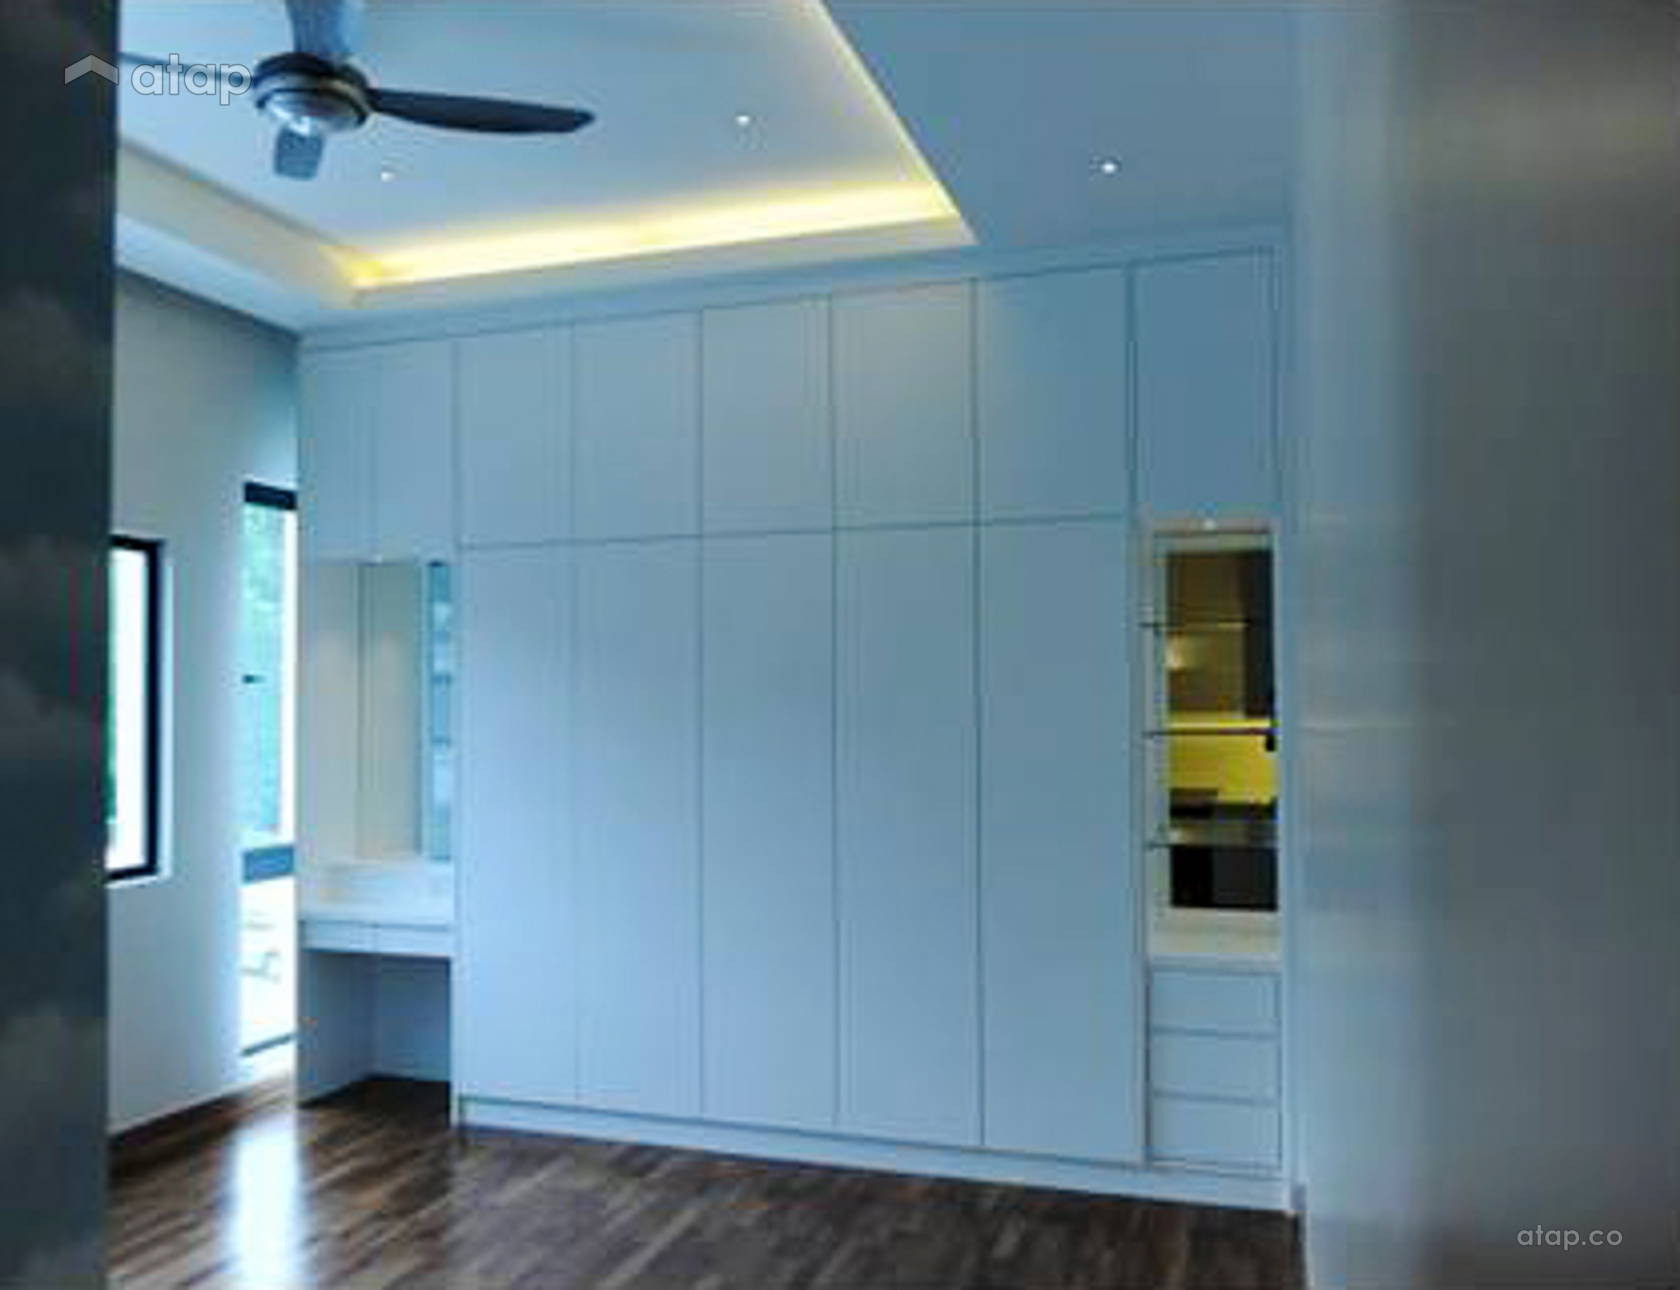 Bayu Segar Semi Detached House Interior Design Renovation Ideas Photos And Price In Malaysia Atap Co